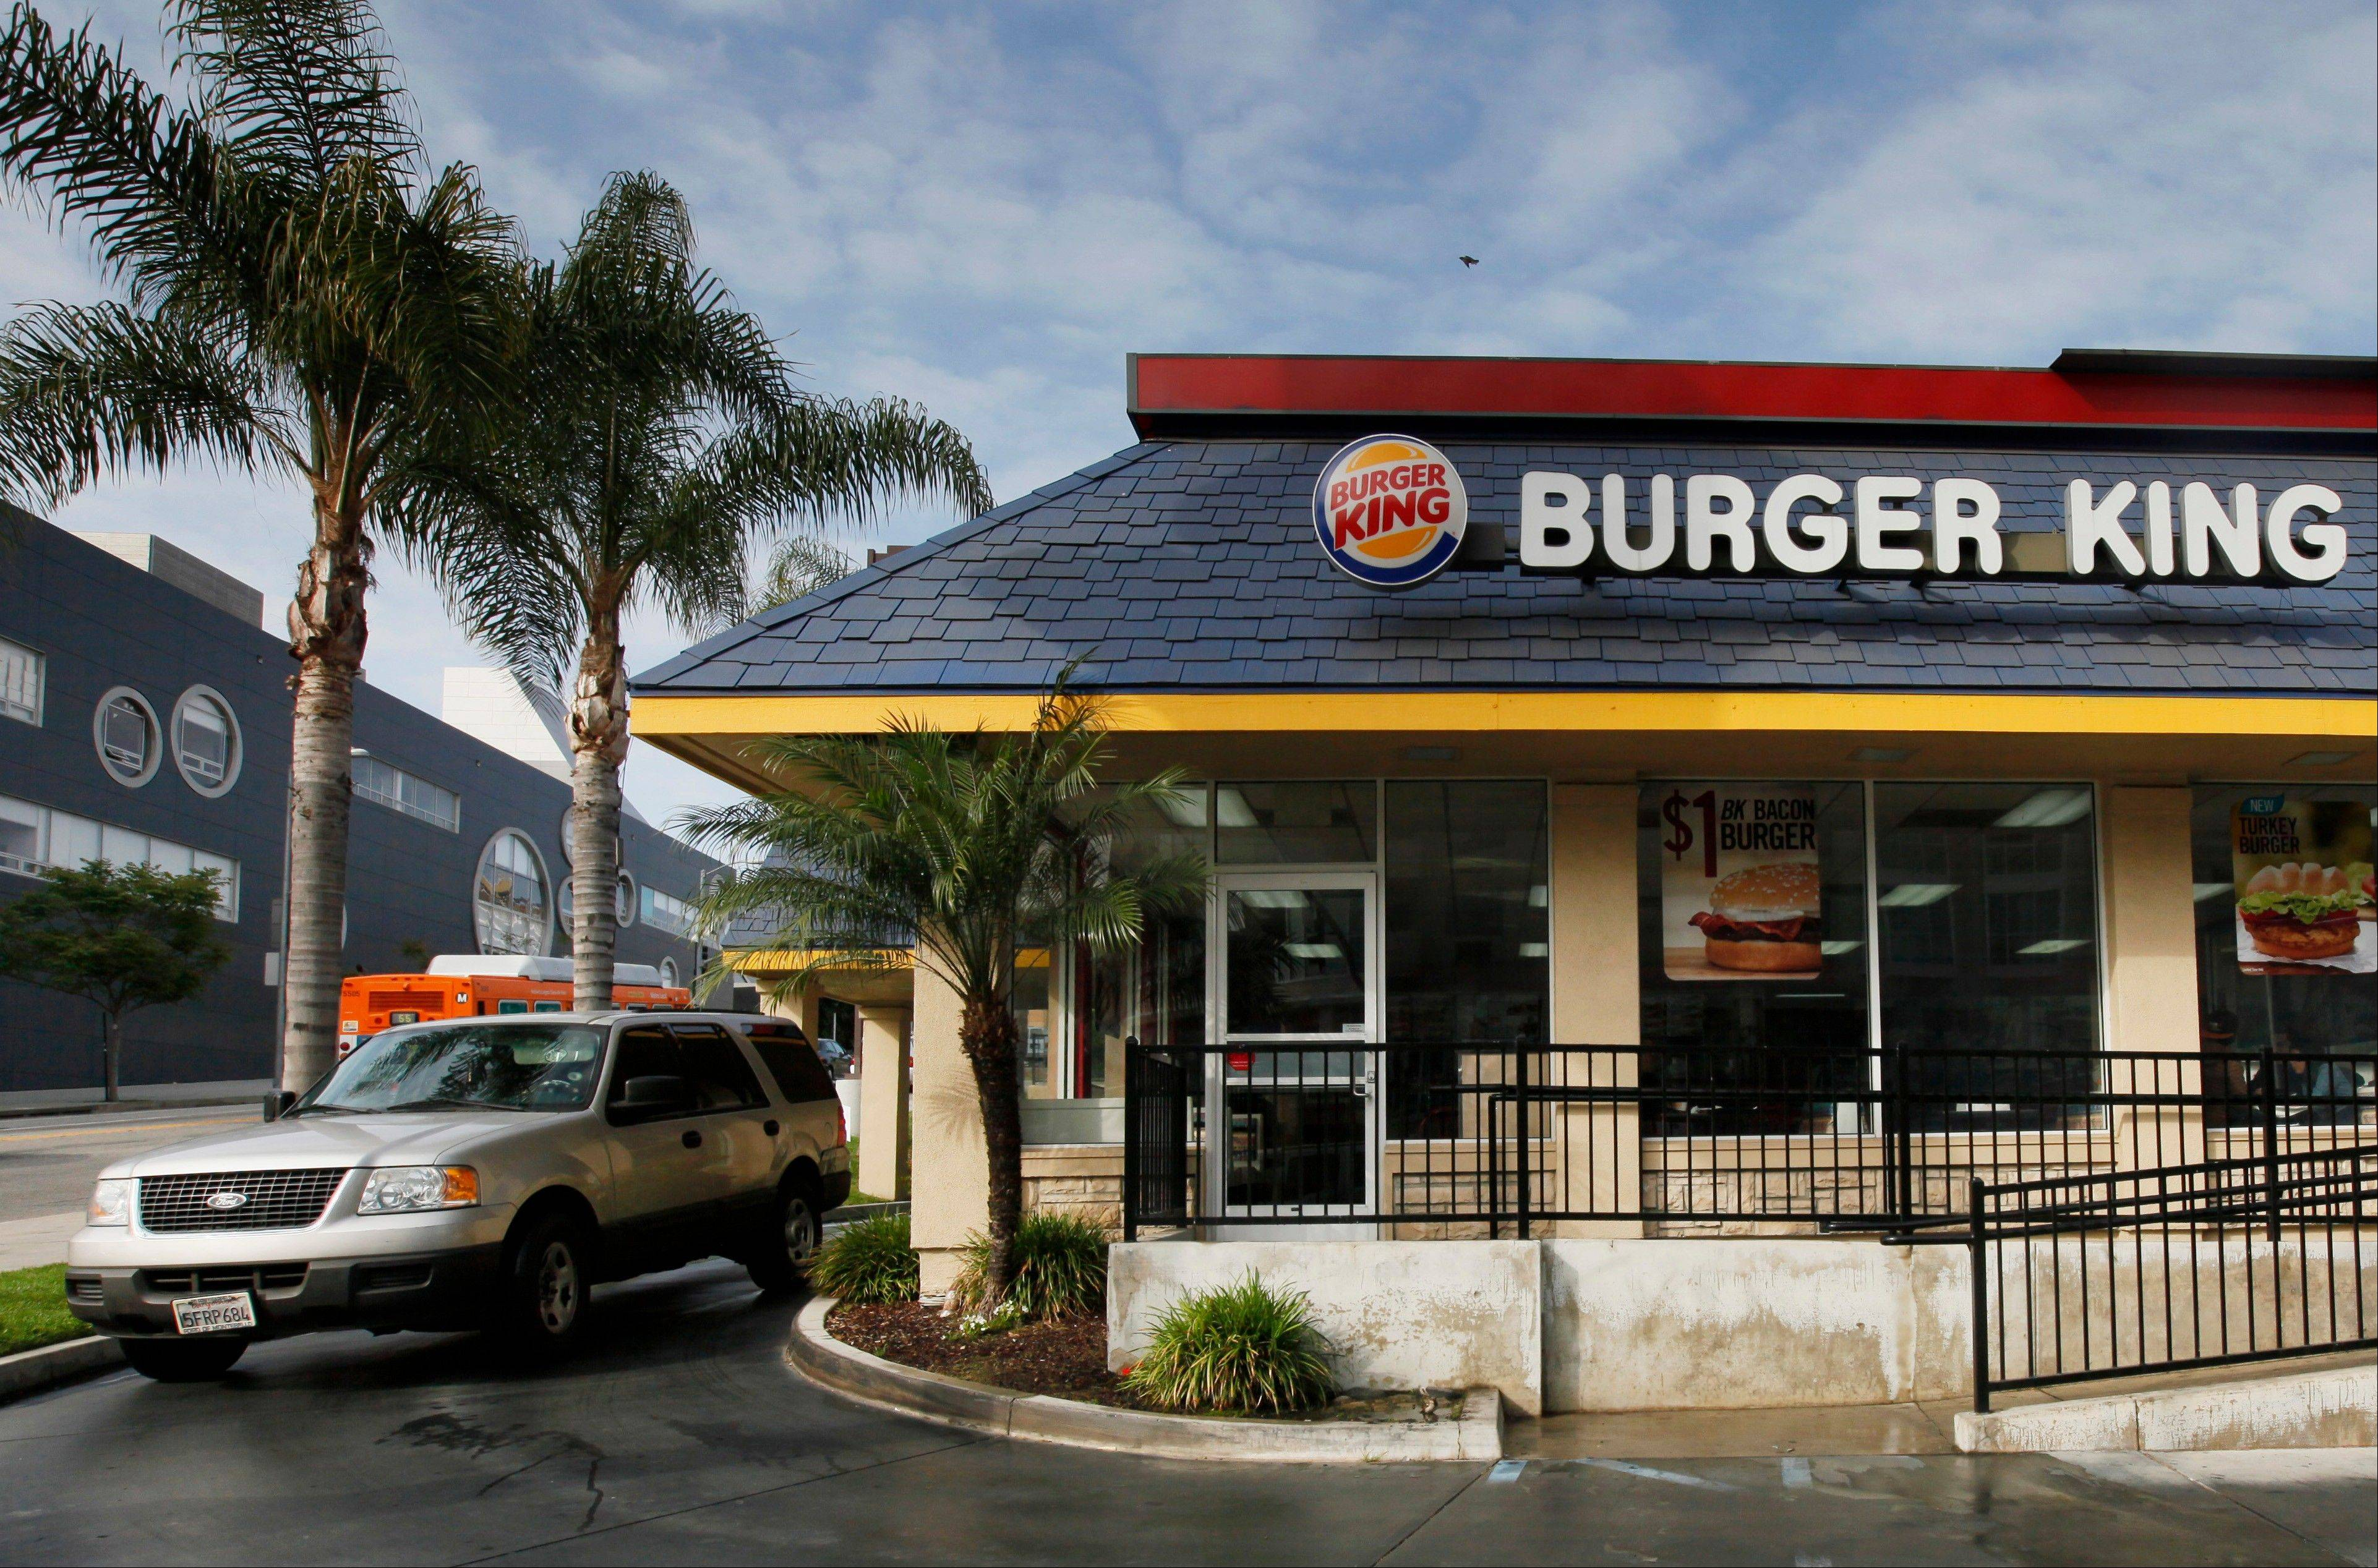 Burger King's first-quarter earnings more than doubled even though revenue fell, as the fast-food chain trimmed several restaurant-related expenses.